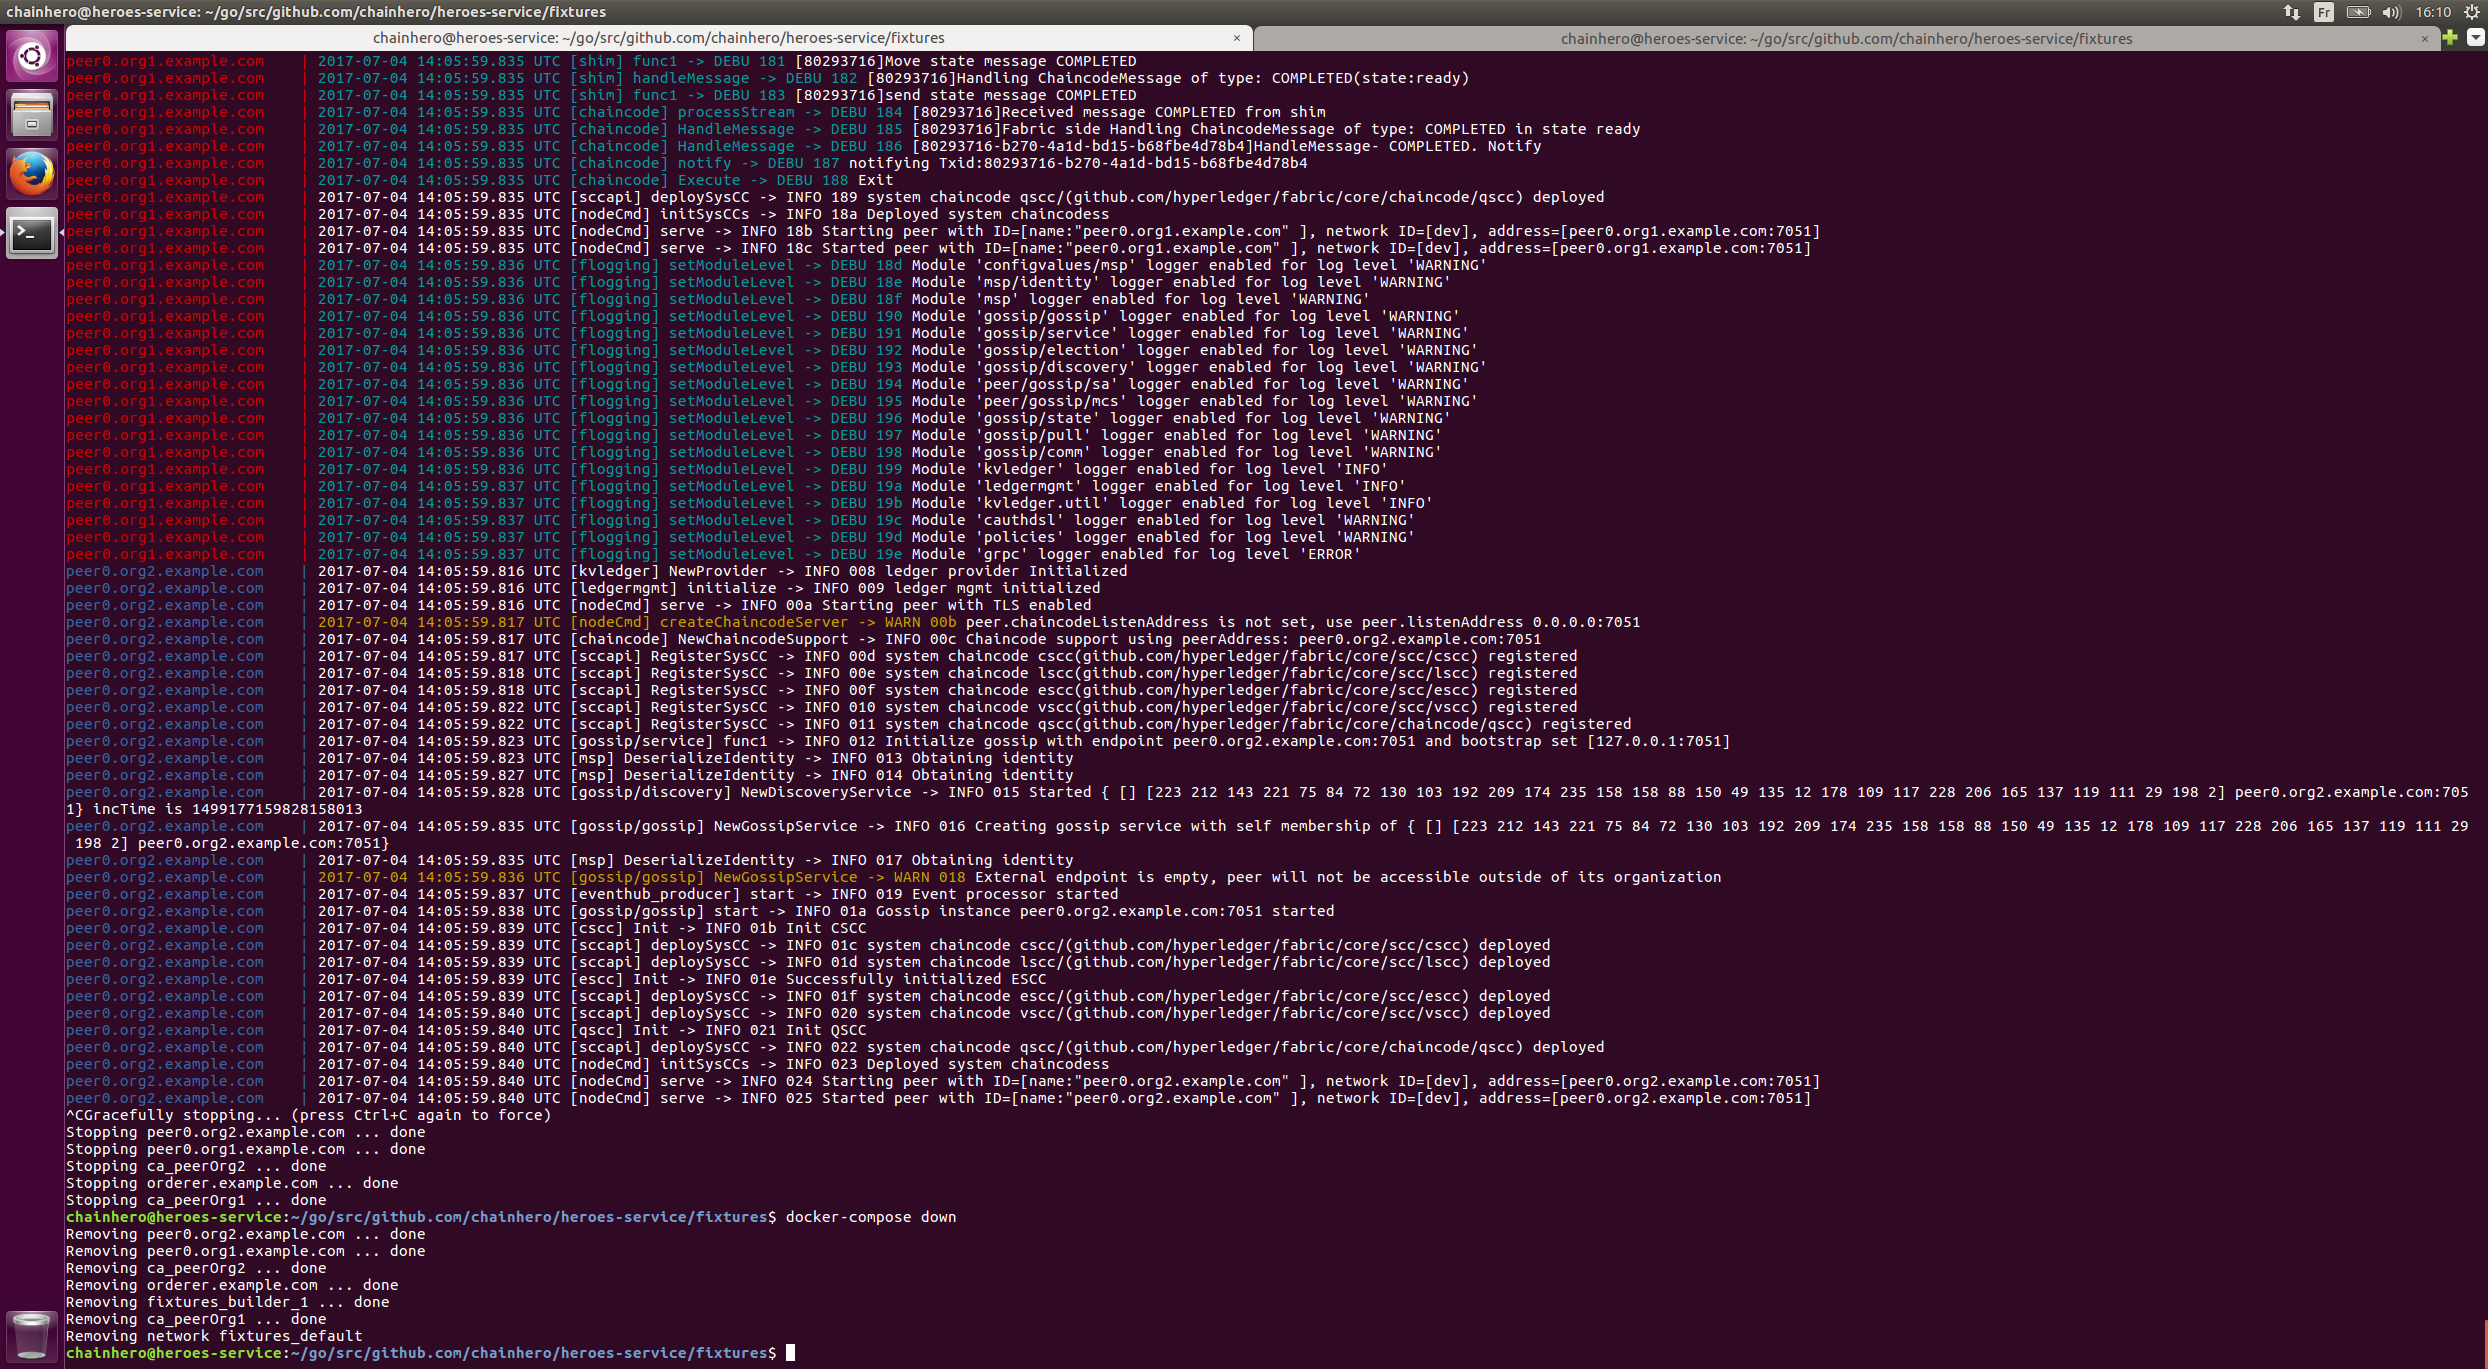 Screenshot command Docker command